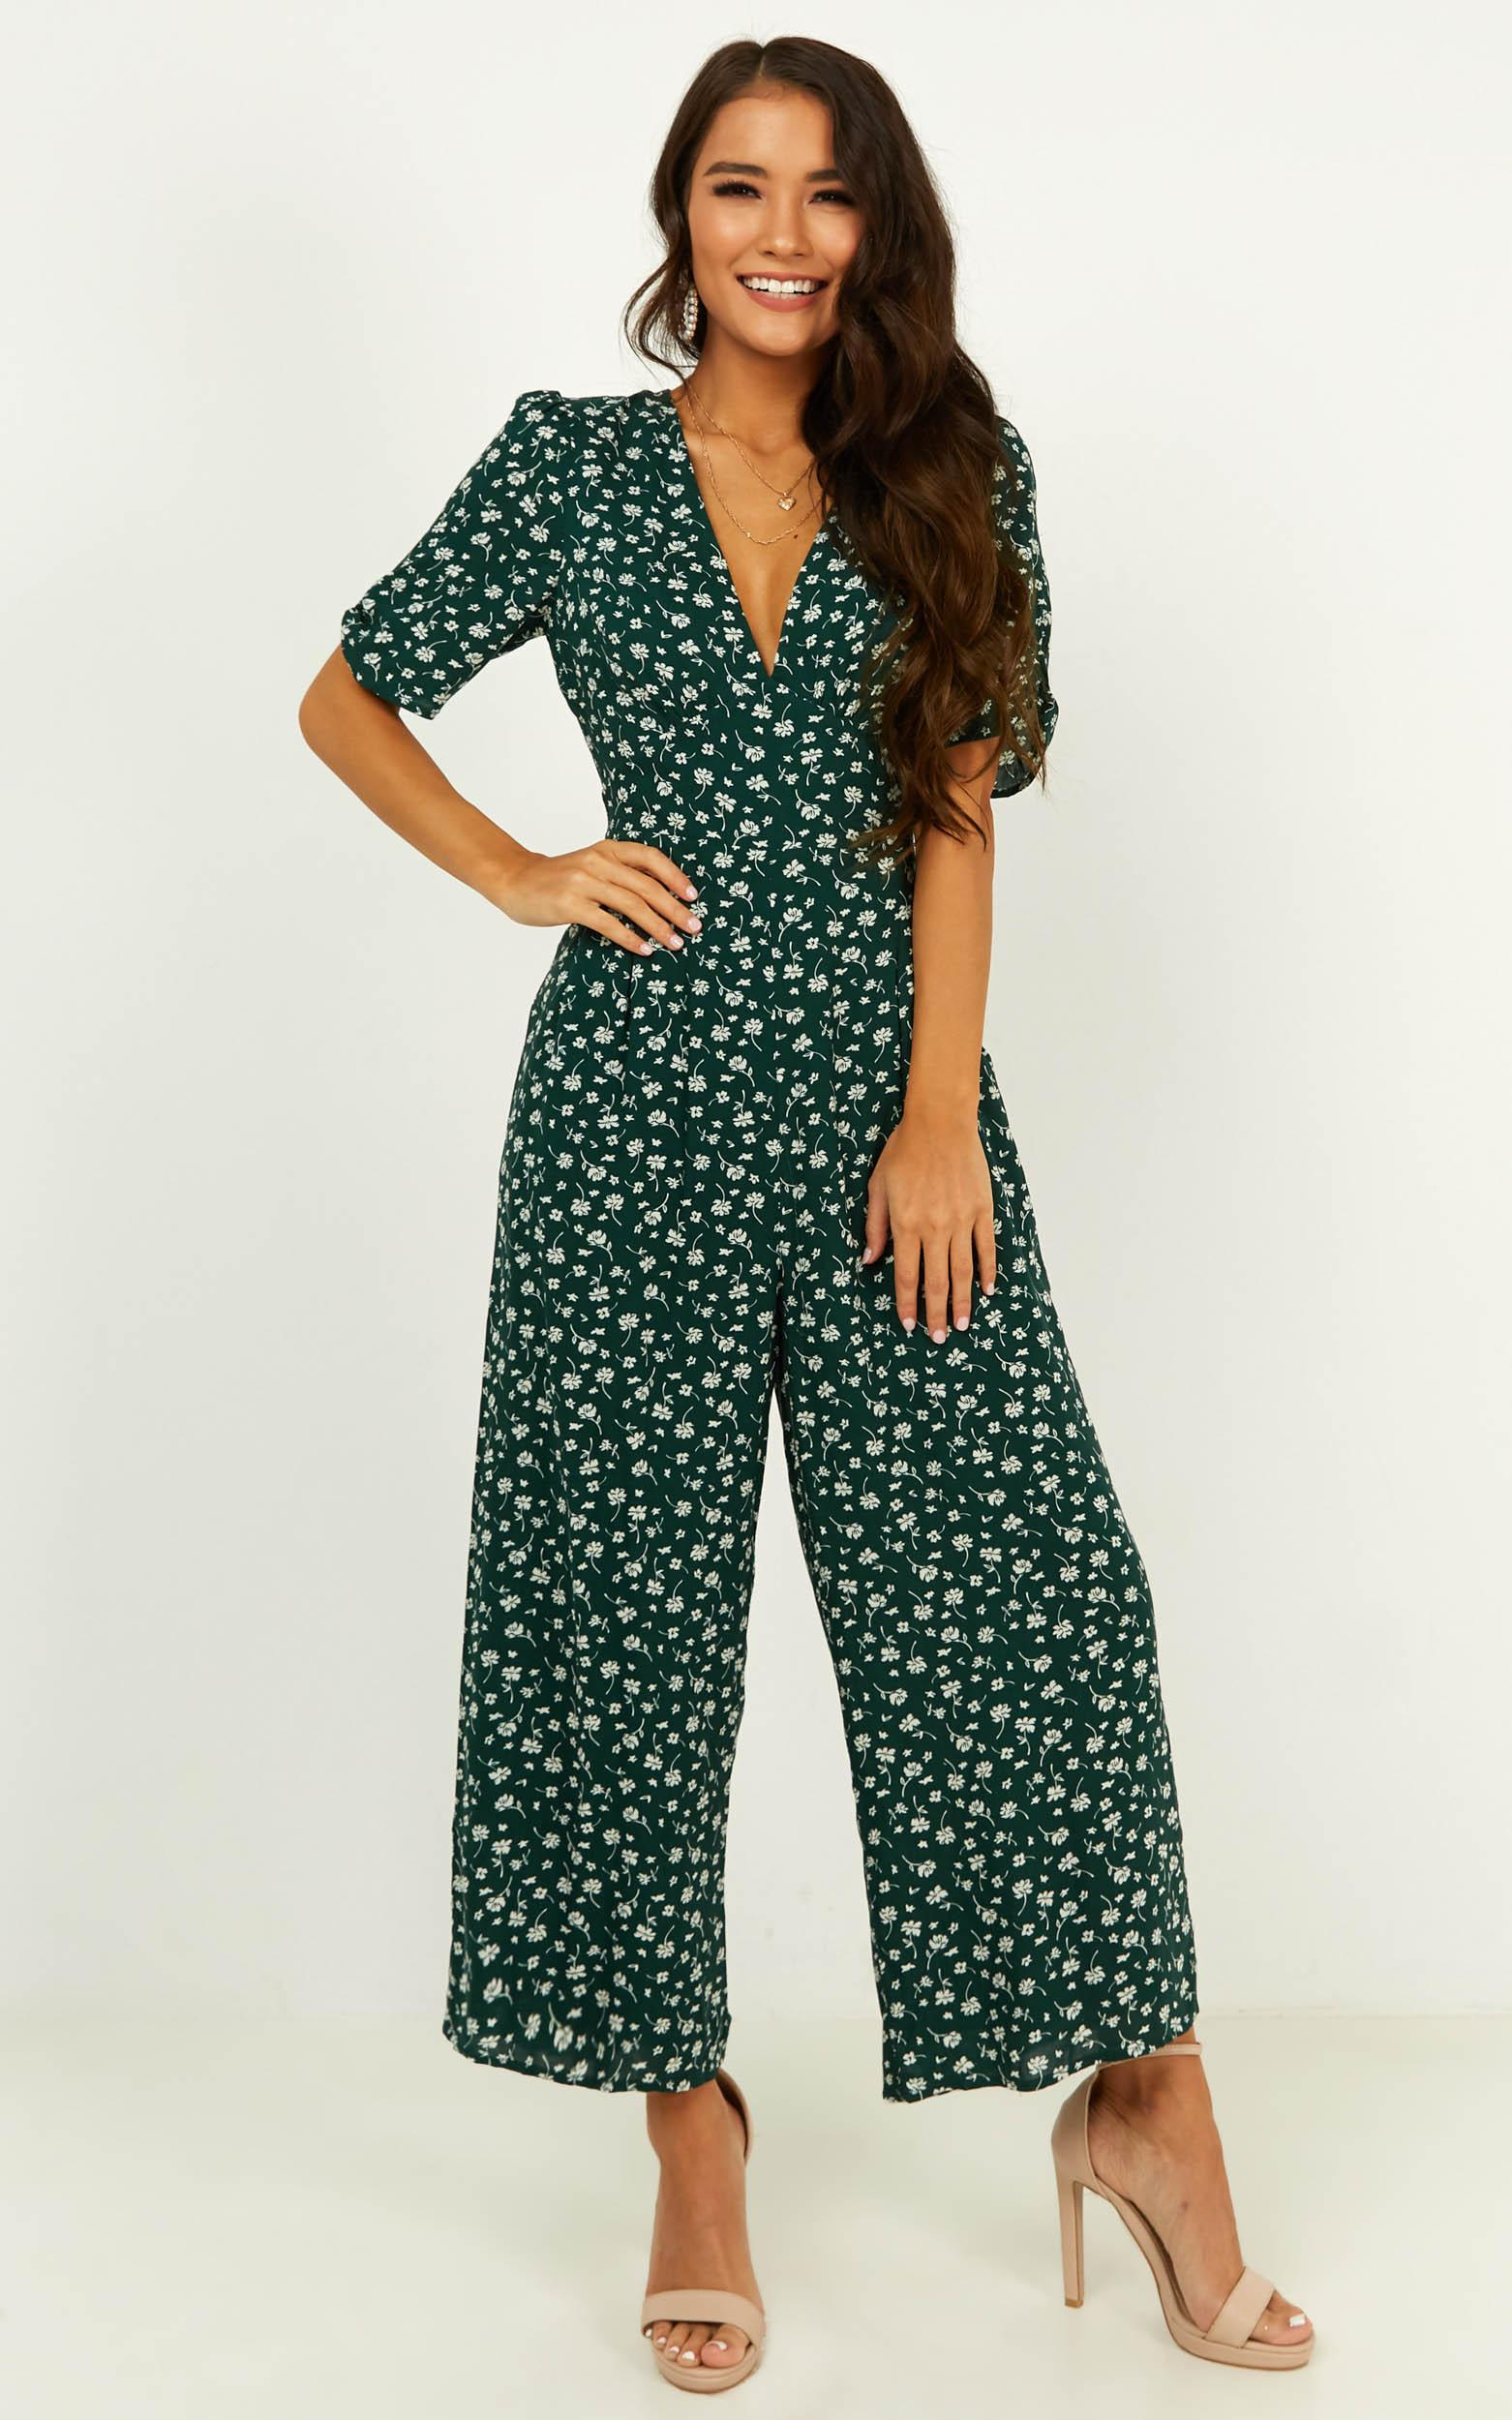 Hit The Lights Jumpsuit in emerald floral - 14 (XL), Green, hi-res image number null